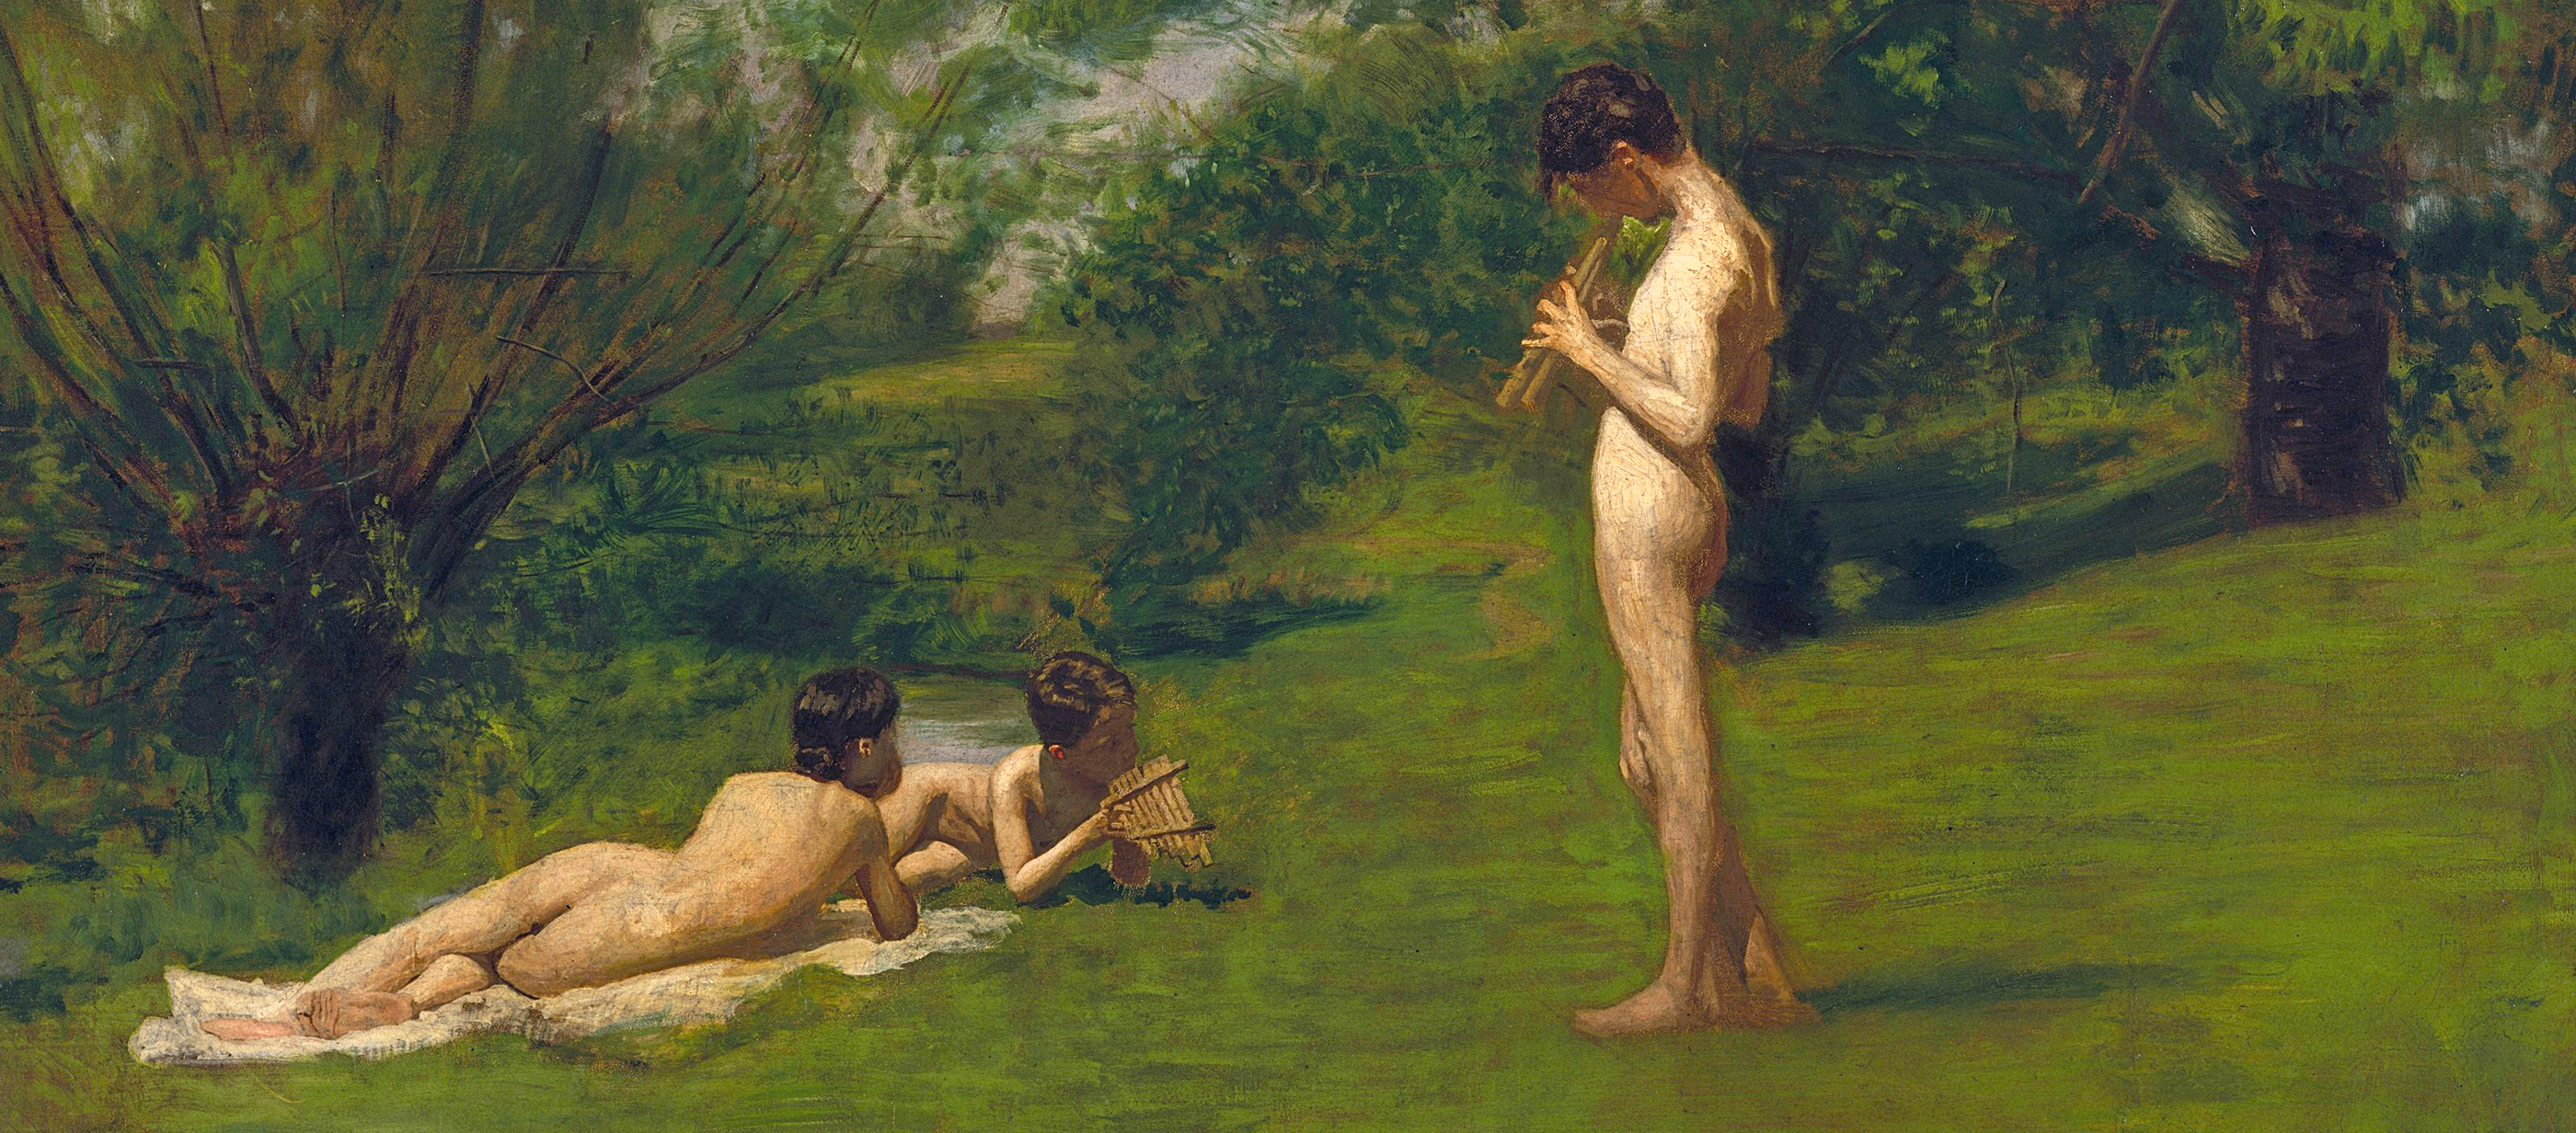 Painting showing two nude young boys relaxing in a field.